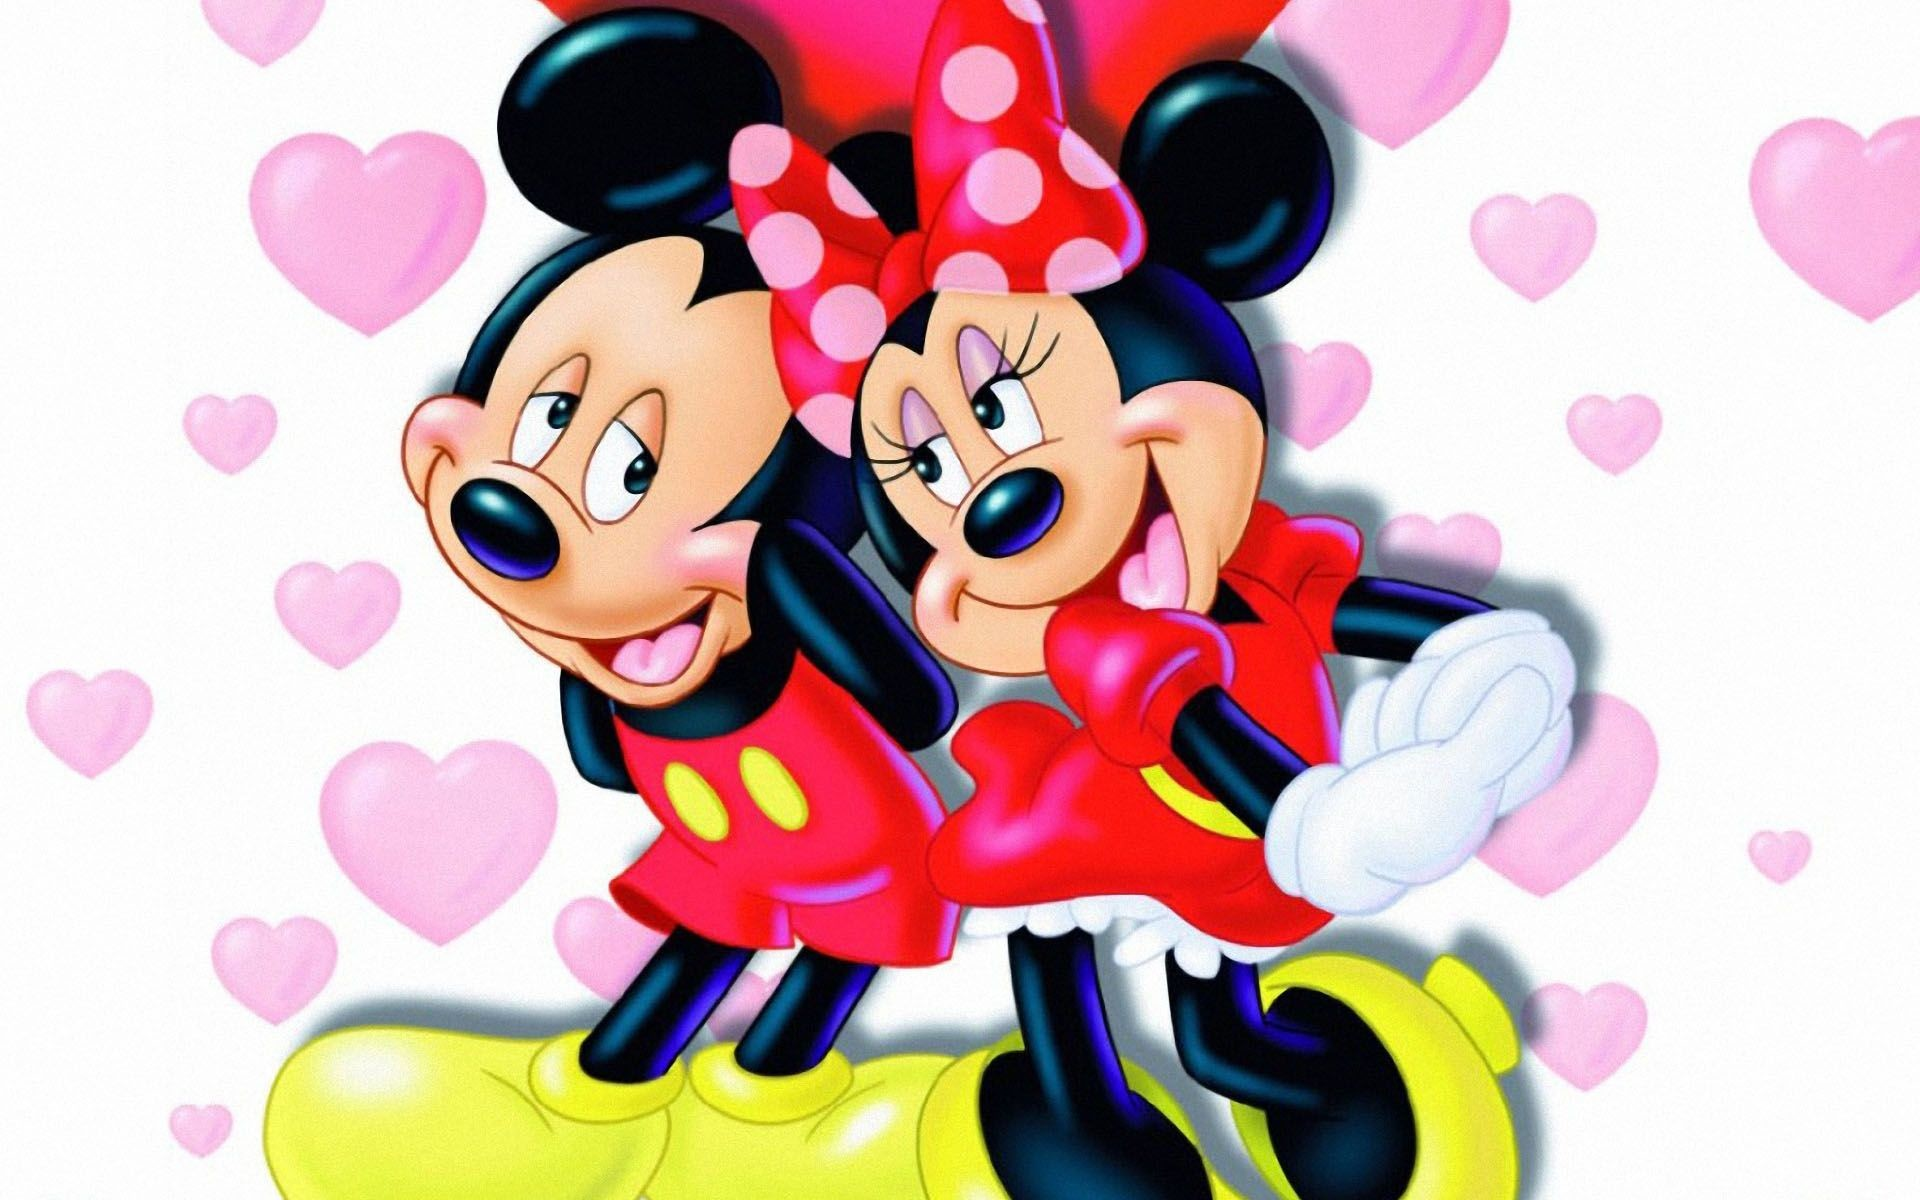 1920x1200 ... cartoon mickey mouse images photos wallpaper download ...